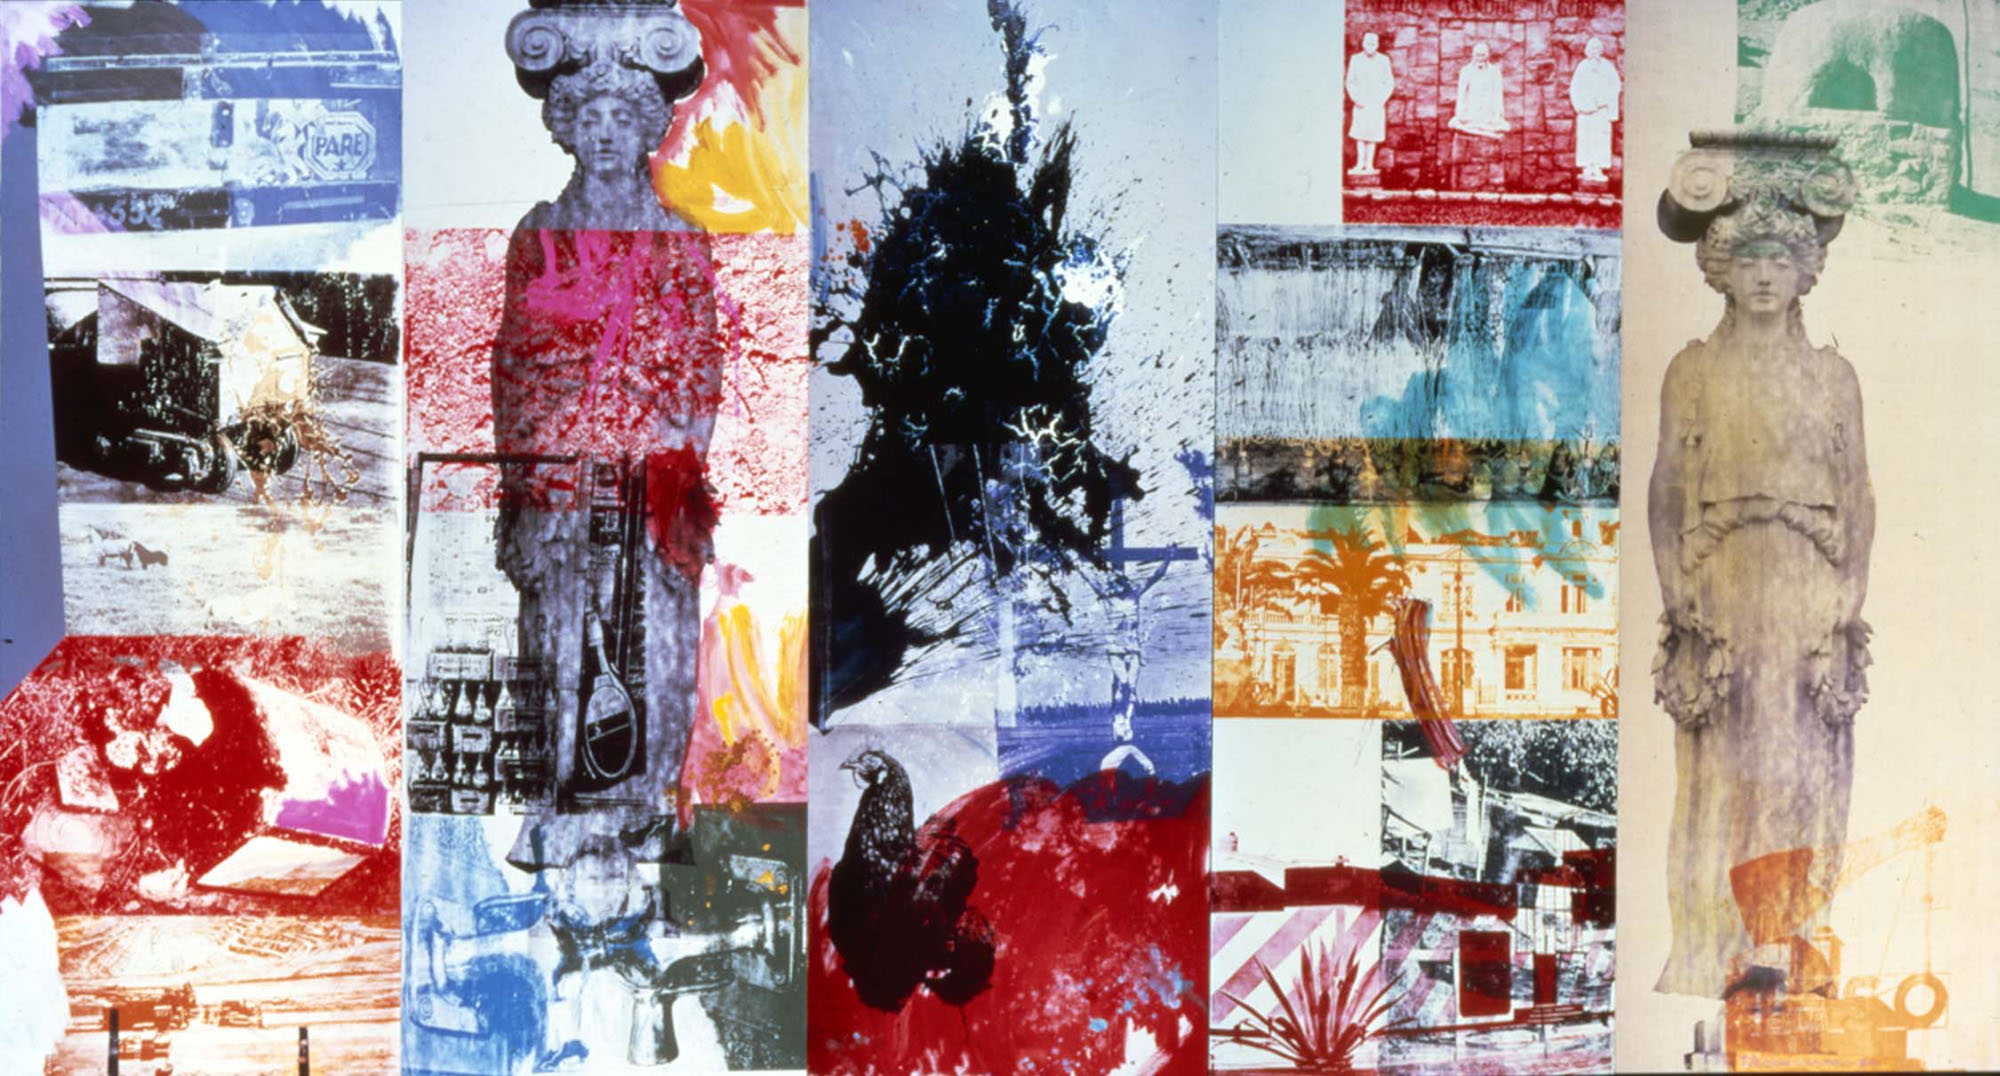 © Robert Rauschenberg Foundation. Caryatid Cavalcade I - ROCI CHILE, 1985 Acrylic on canvas (351.8 x 662.3 cm) Robert Rauschenberg Foundation